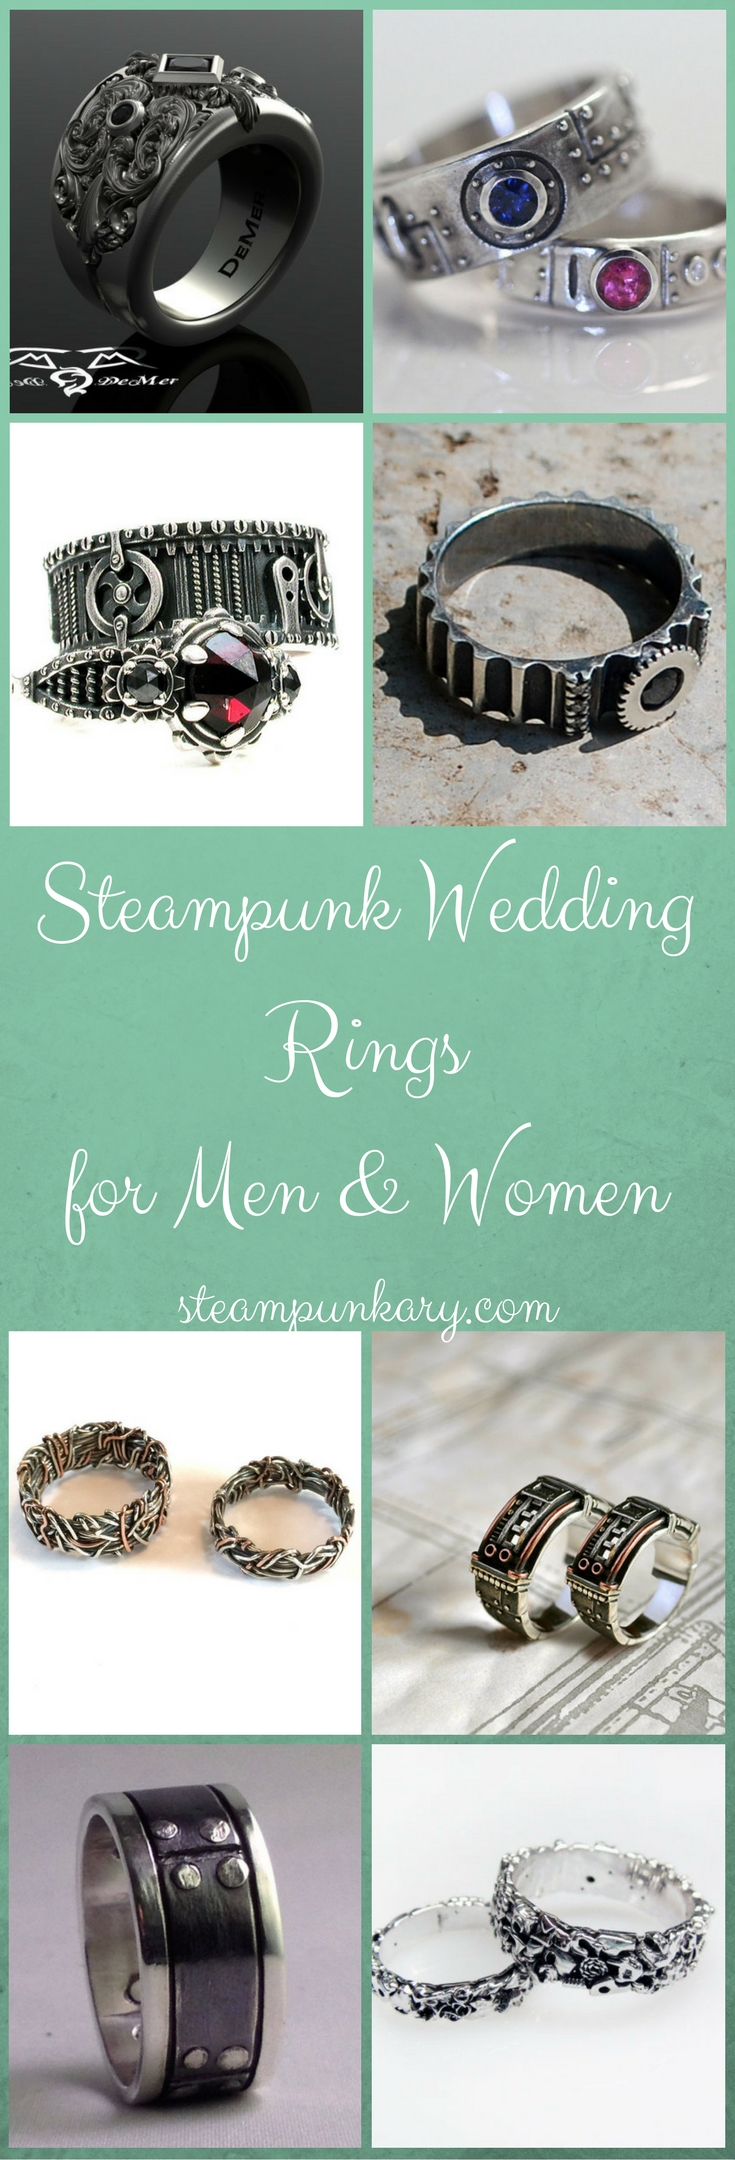 steampunk wedding rings for men and women - Steampunk Wedding Rings